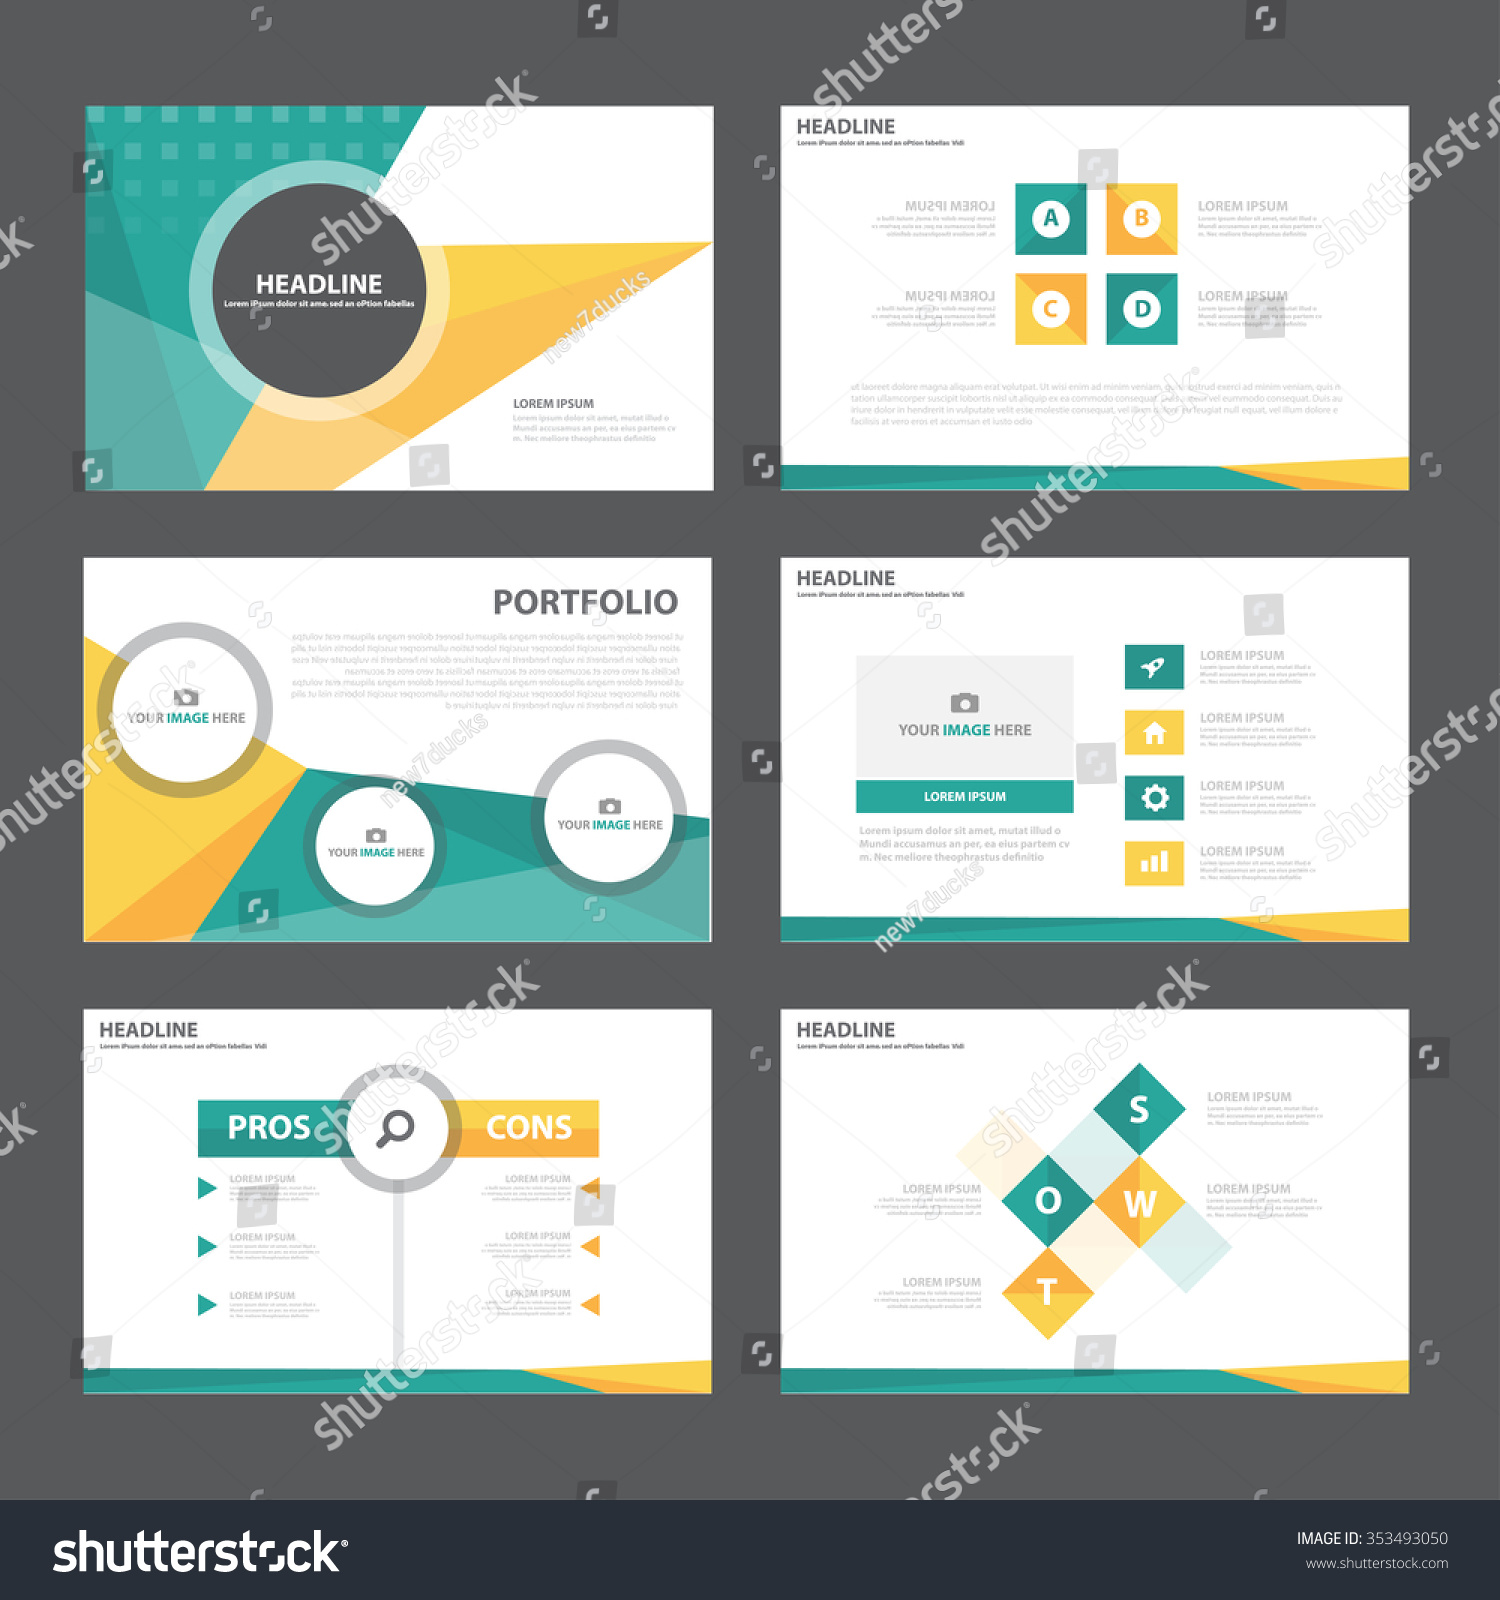 green orange presentation template infographic elements stock vector 353493050 shutterstock. Black Bedroom Furniture Sets. Home Design Ideas